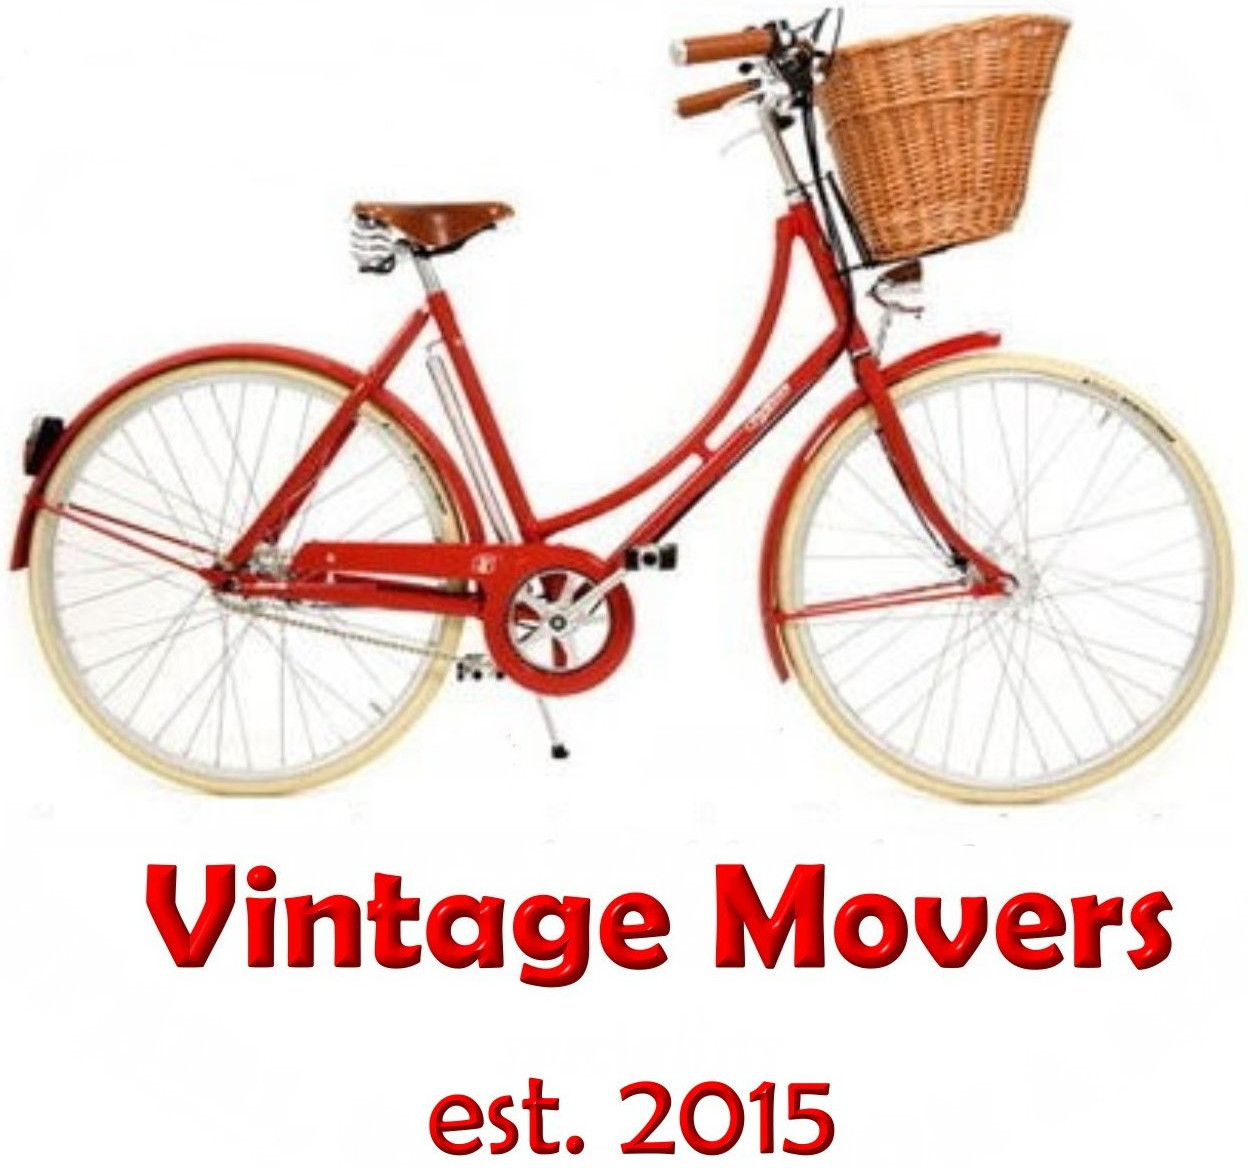 Vintage Movers